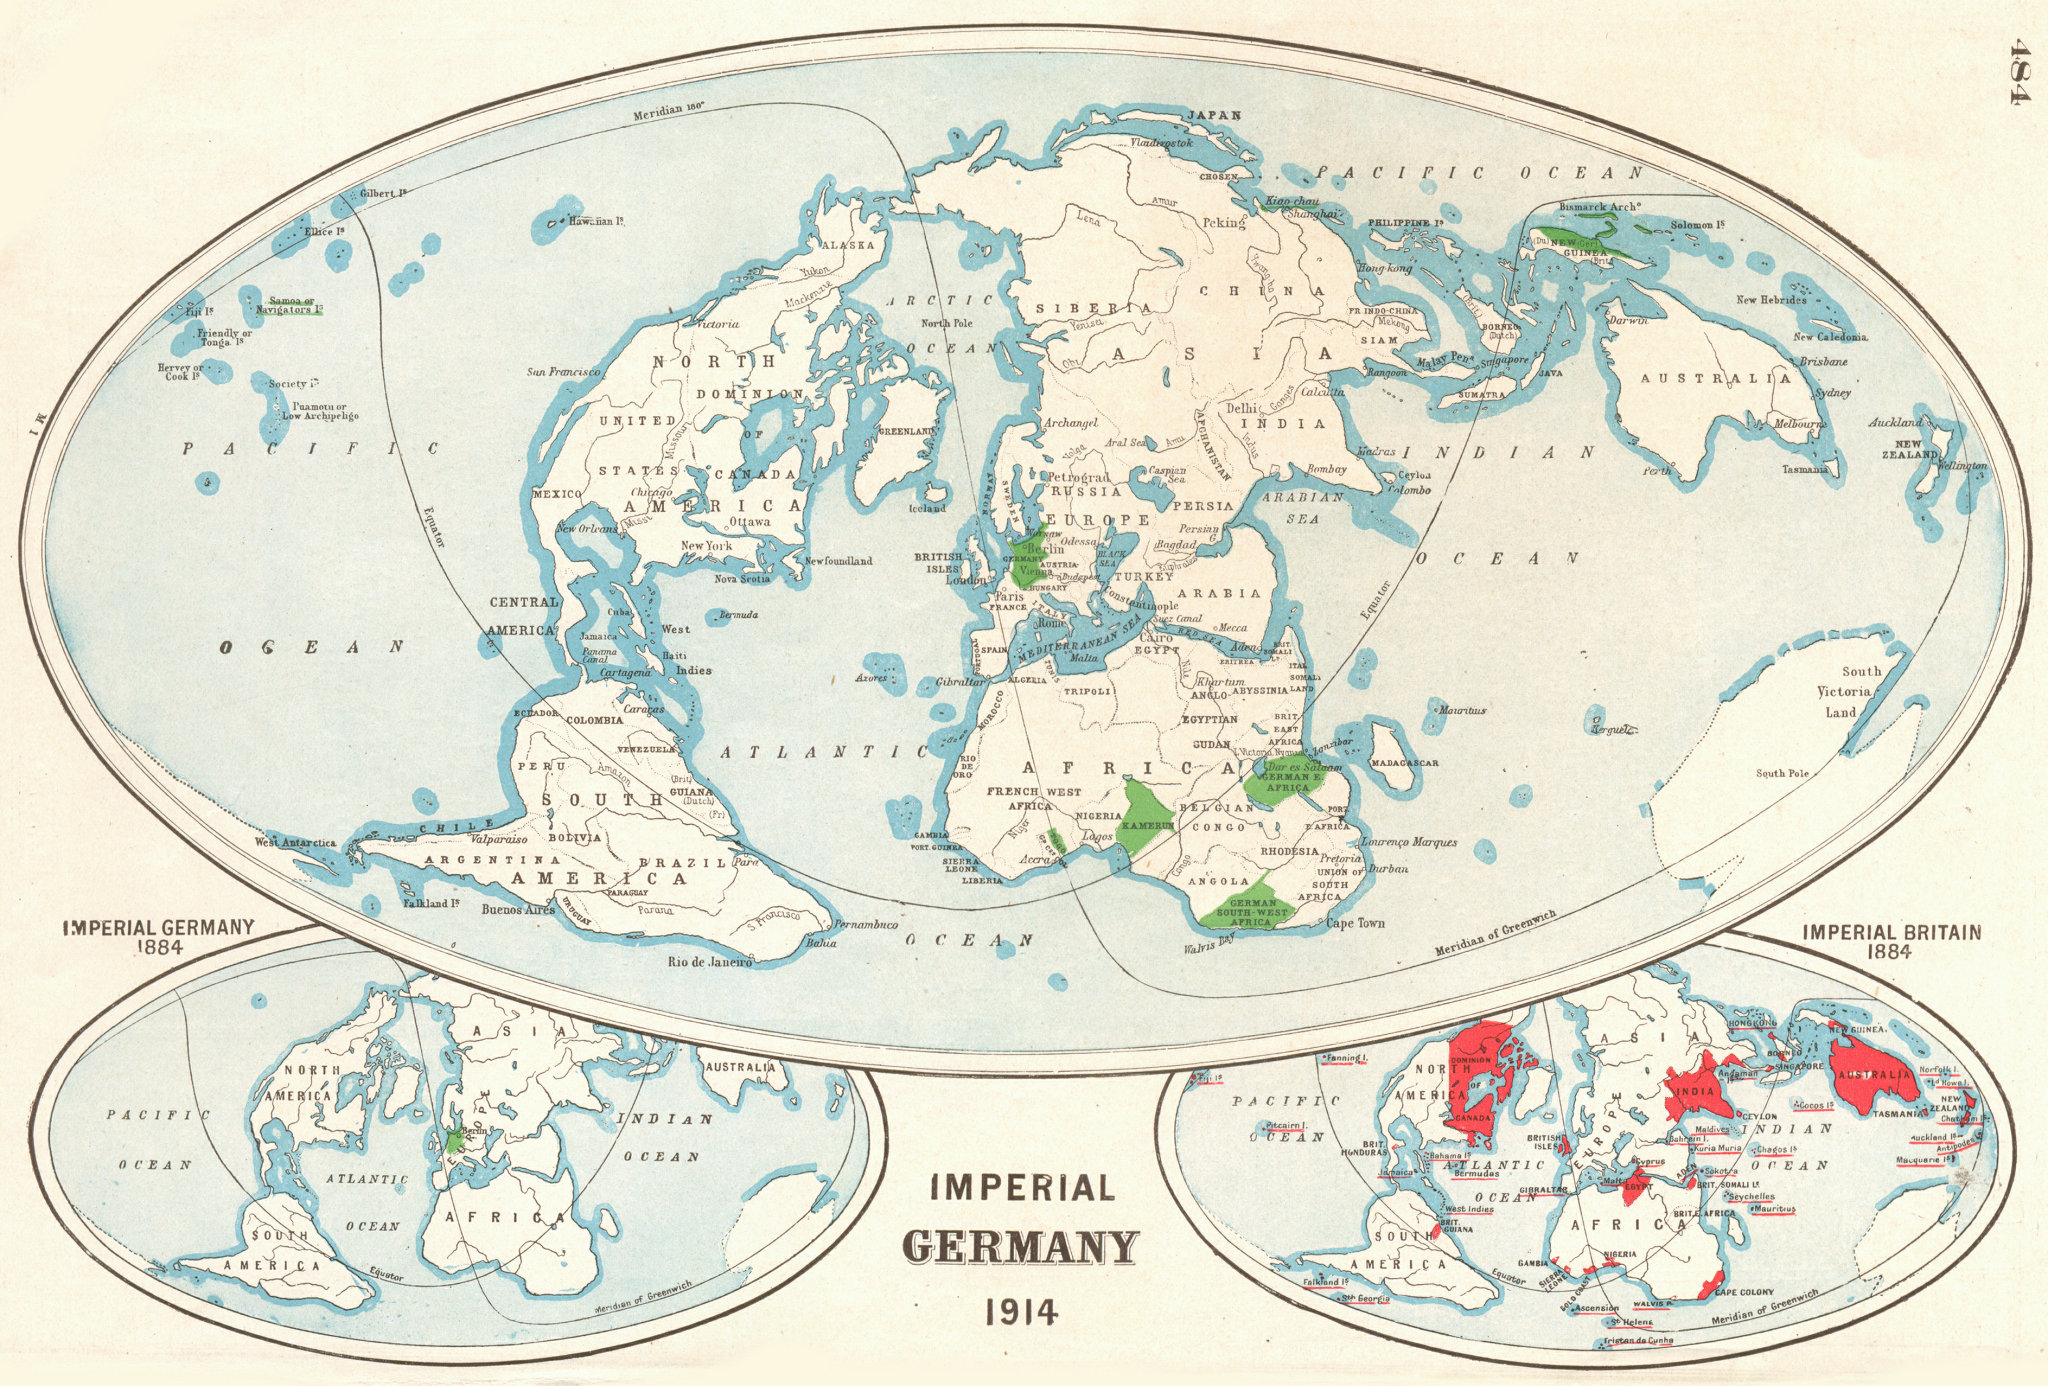 Associate Product GERMAN EMPIRE. Shown in 1884 & 1914. British Empire in 1884. Imperial 1920 map